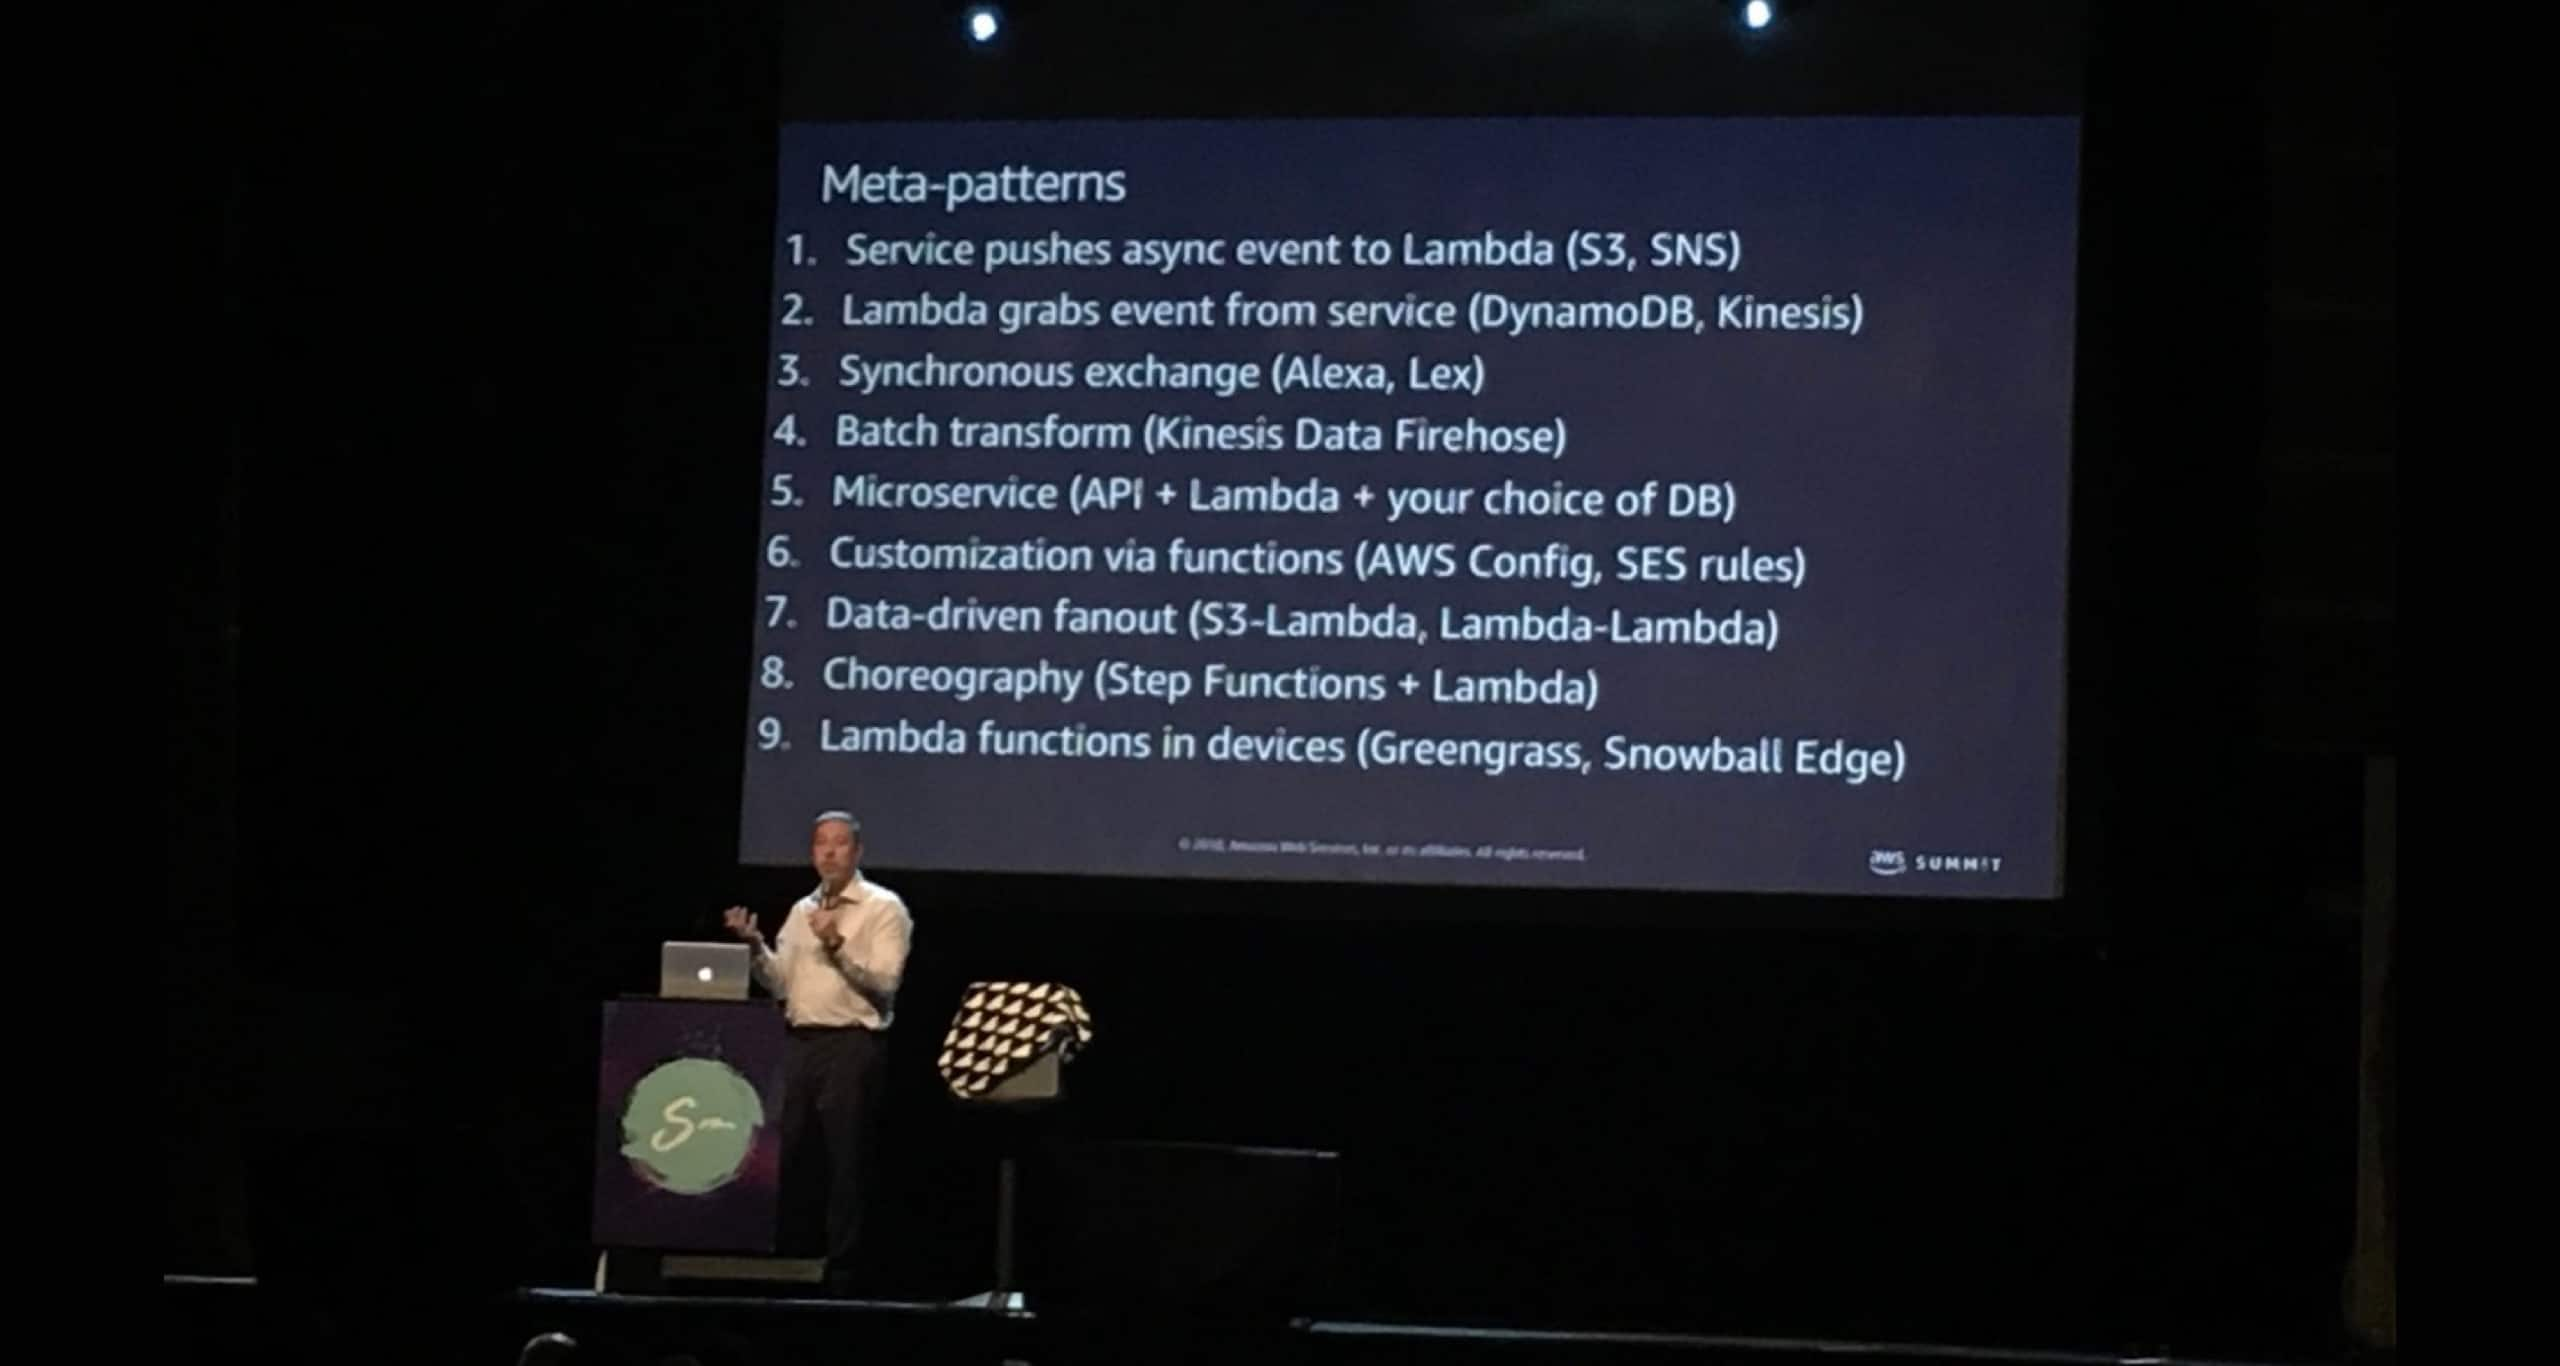 Serverless architecture: Meta-Patterns presented at the ServerlessConf 2018